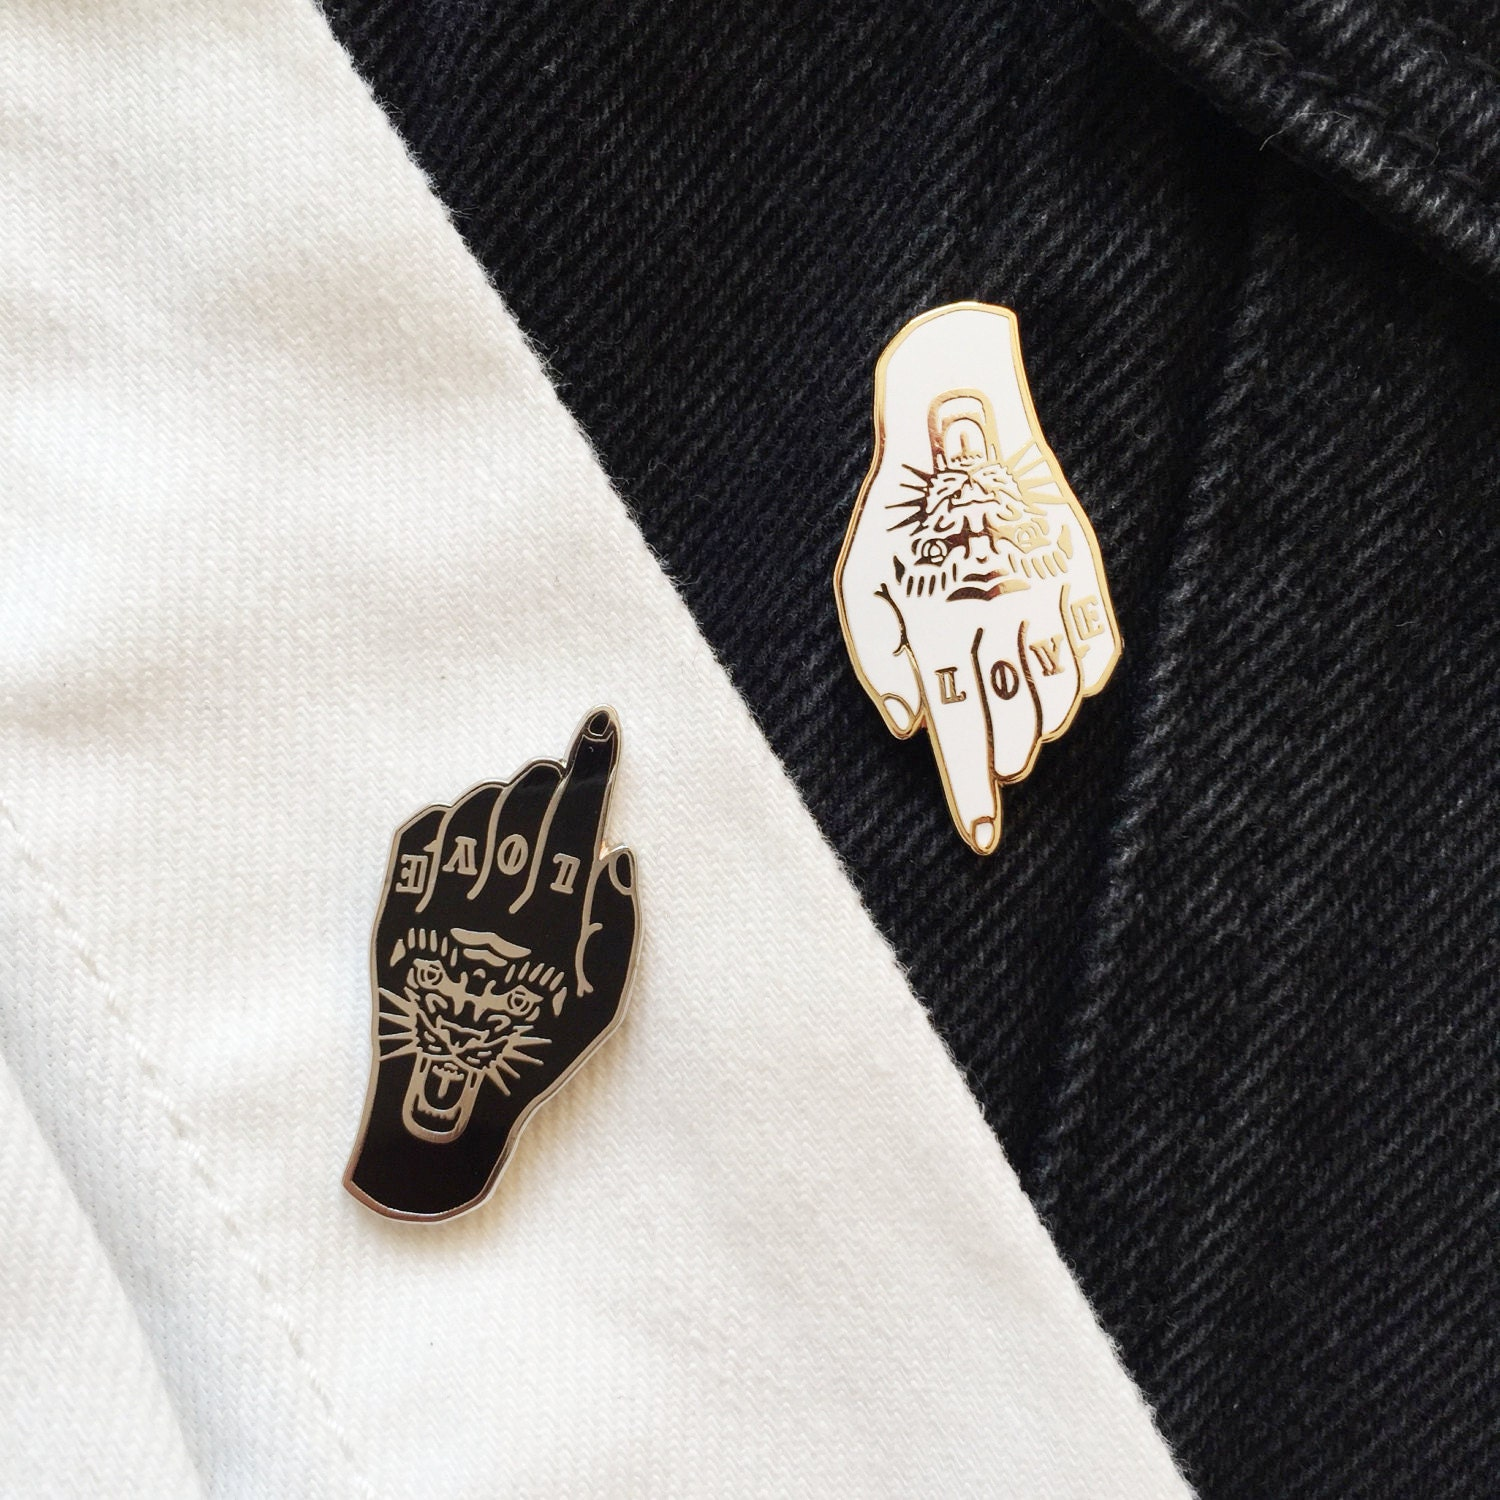 Pin By Gagan Sampla On Page Tattoo: Tiger Love Tattoo Hand Enamel Pin Badge Lapel Pin Black Silver